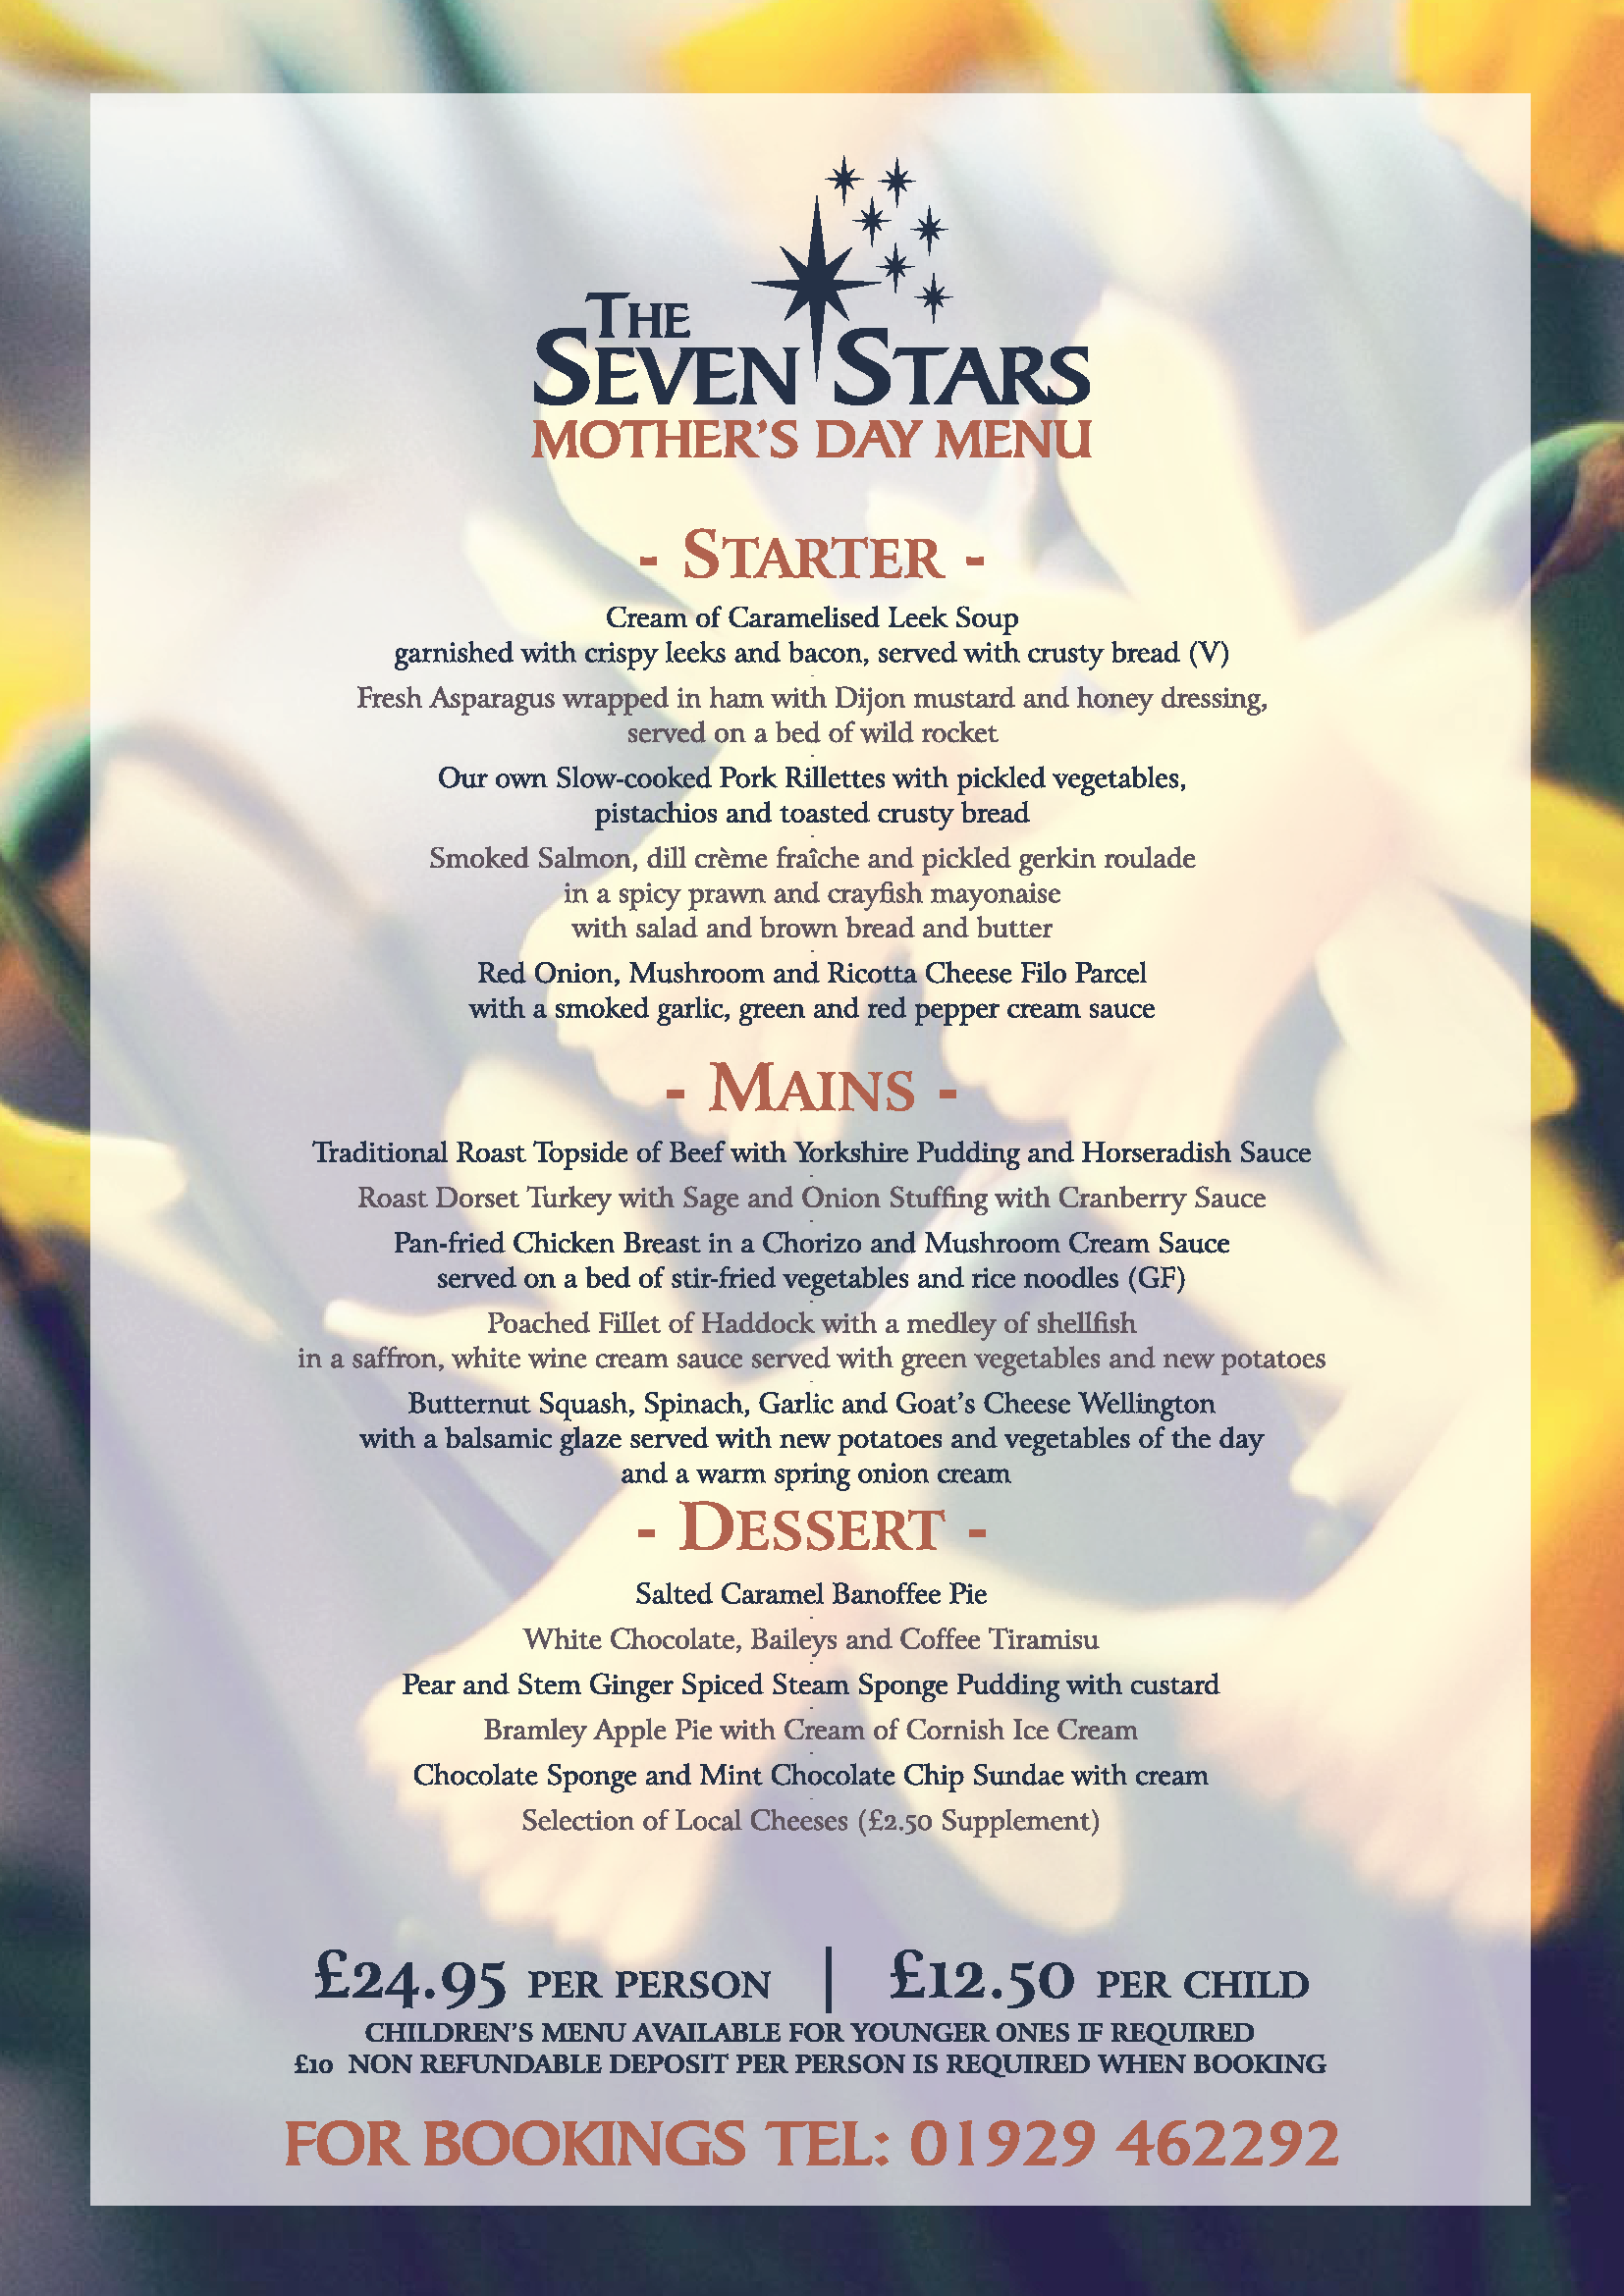 Seven Stars Wool nr Wareham, Dorset - Mother's Day Menu